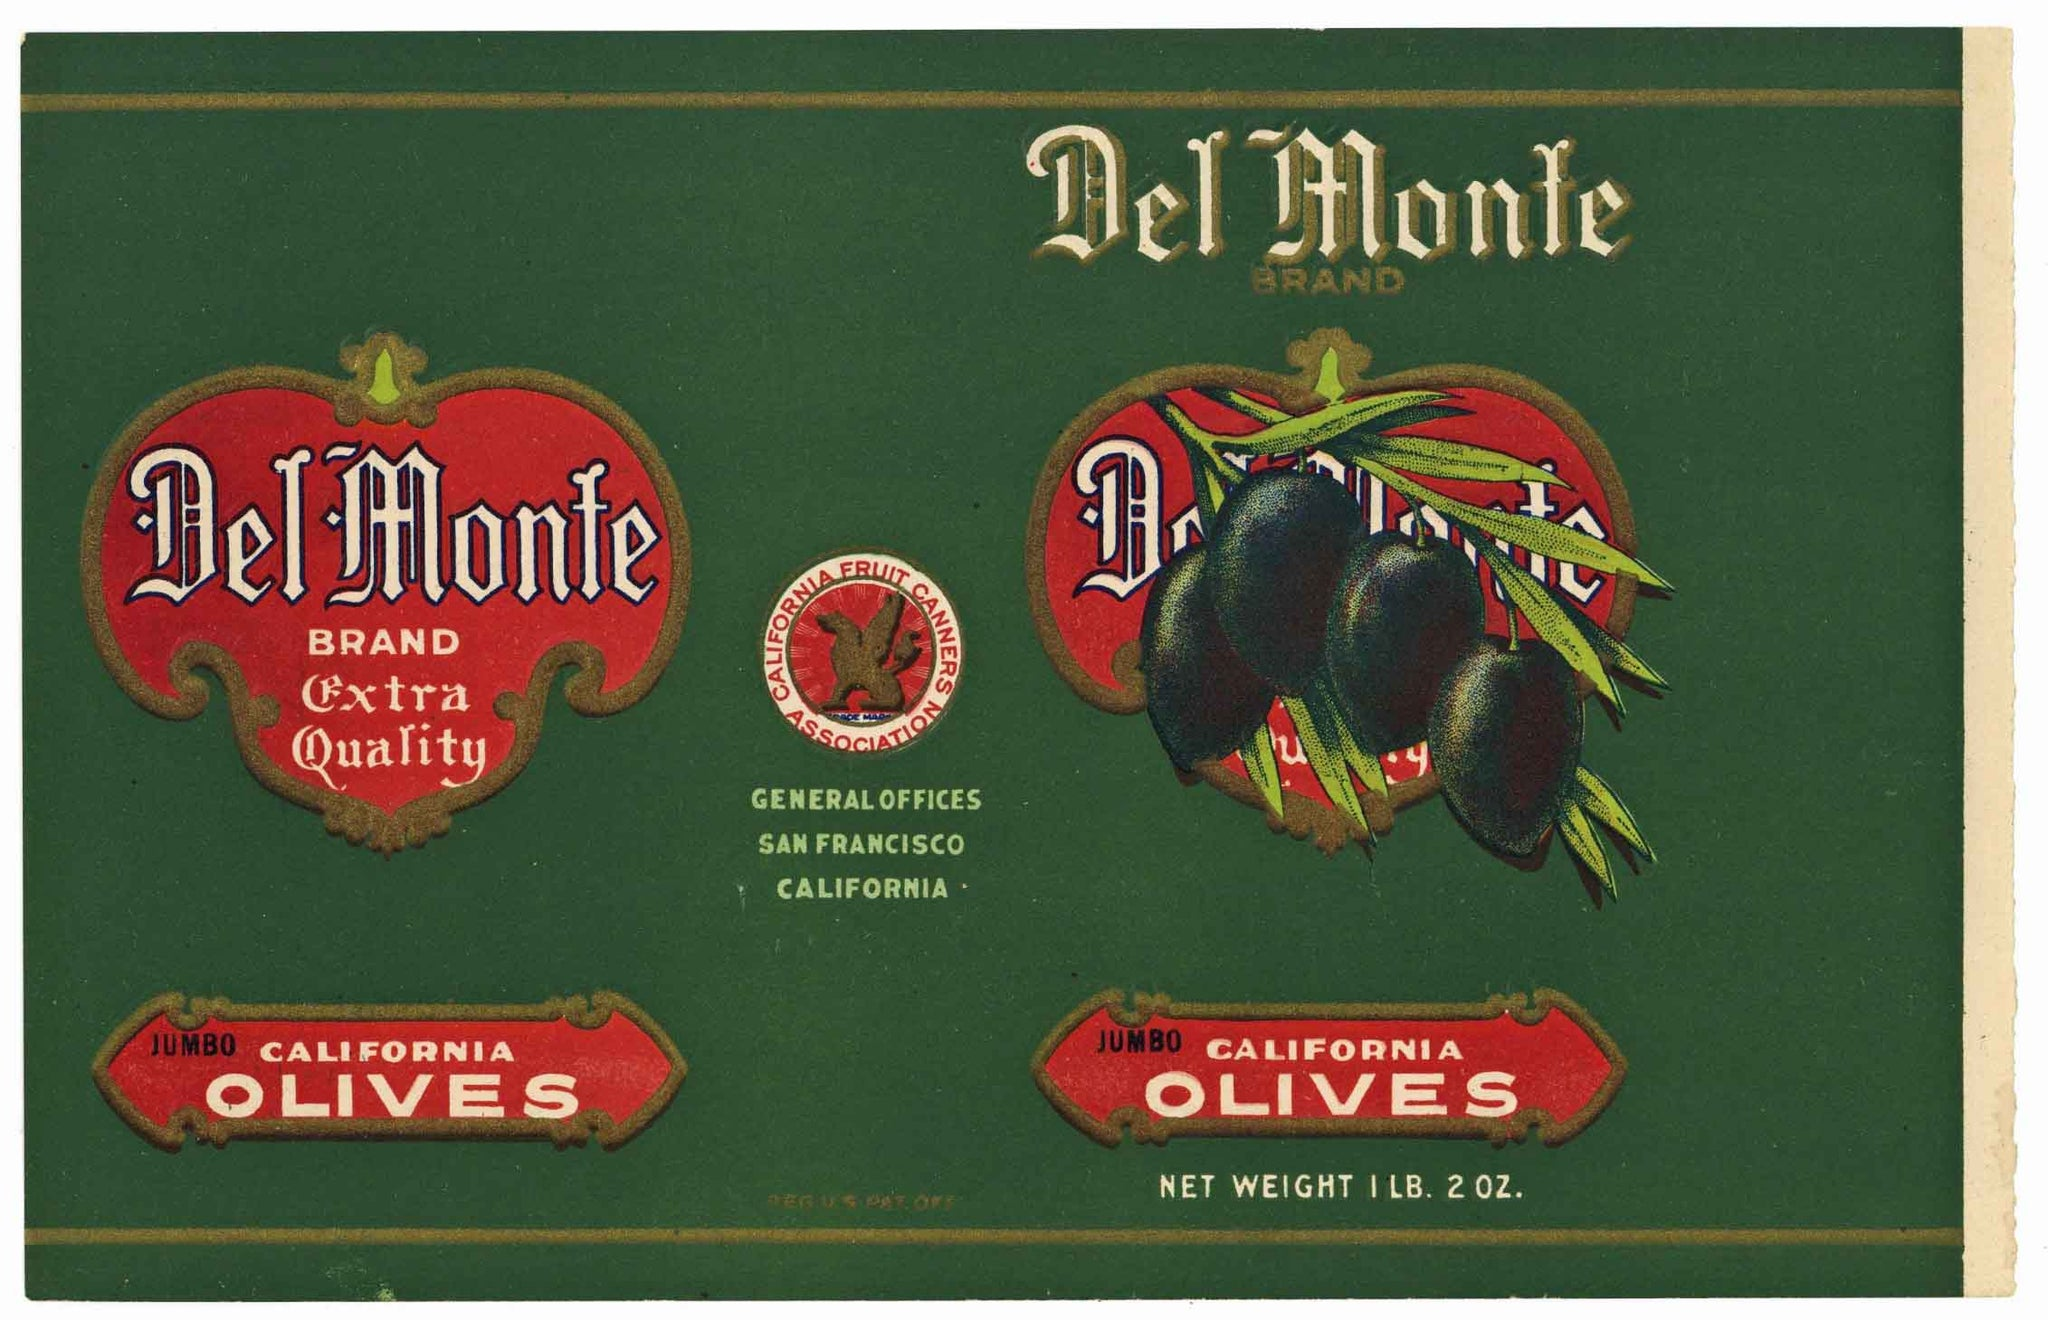 Del Monte Brand Vintage Jumbo Olives Can Label, 1910s